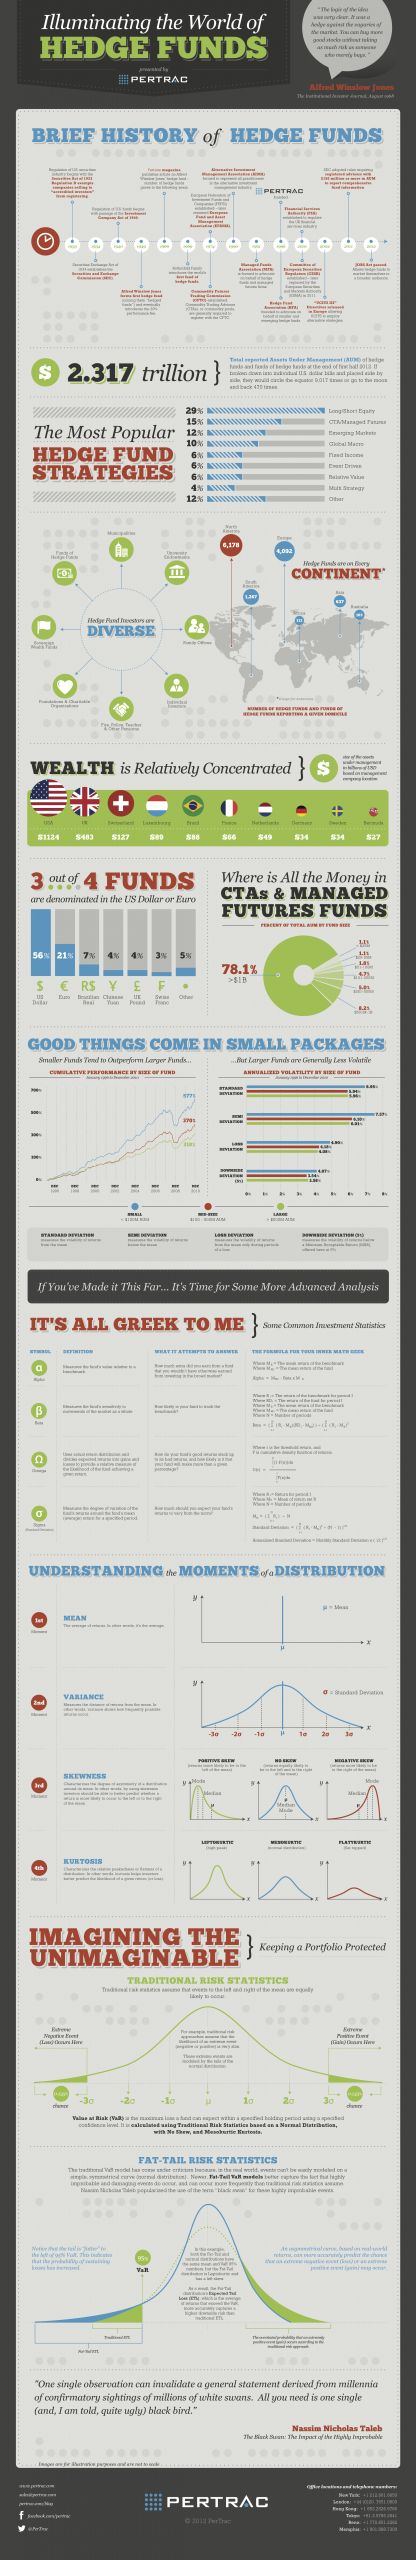 Almost everything you need to know about the world of hedge funds infographic